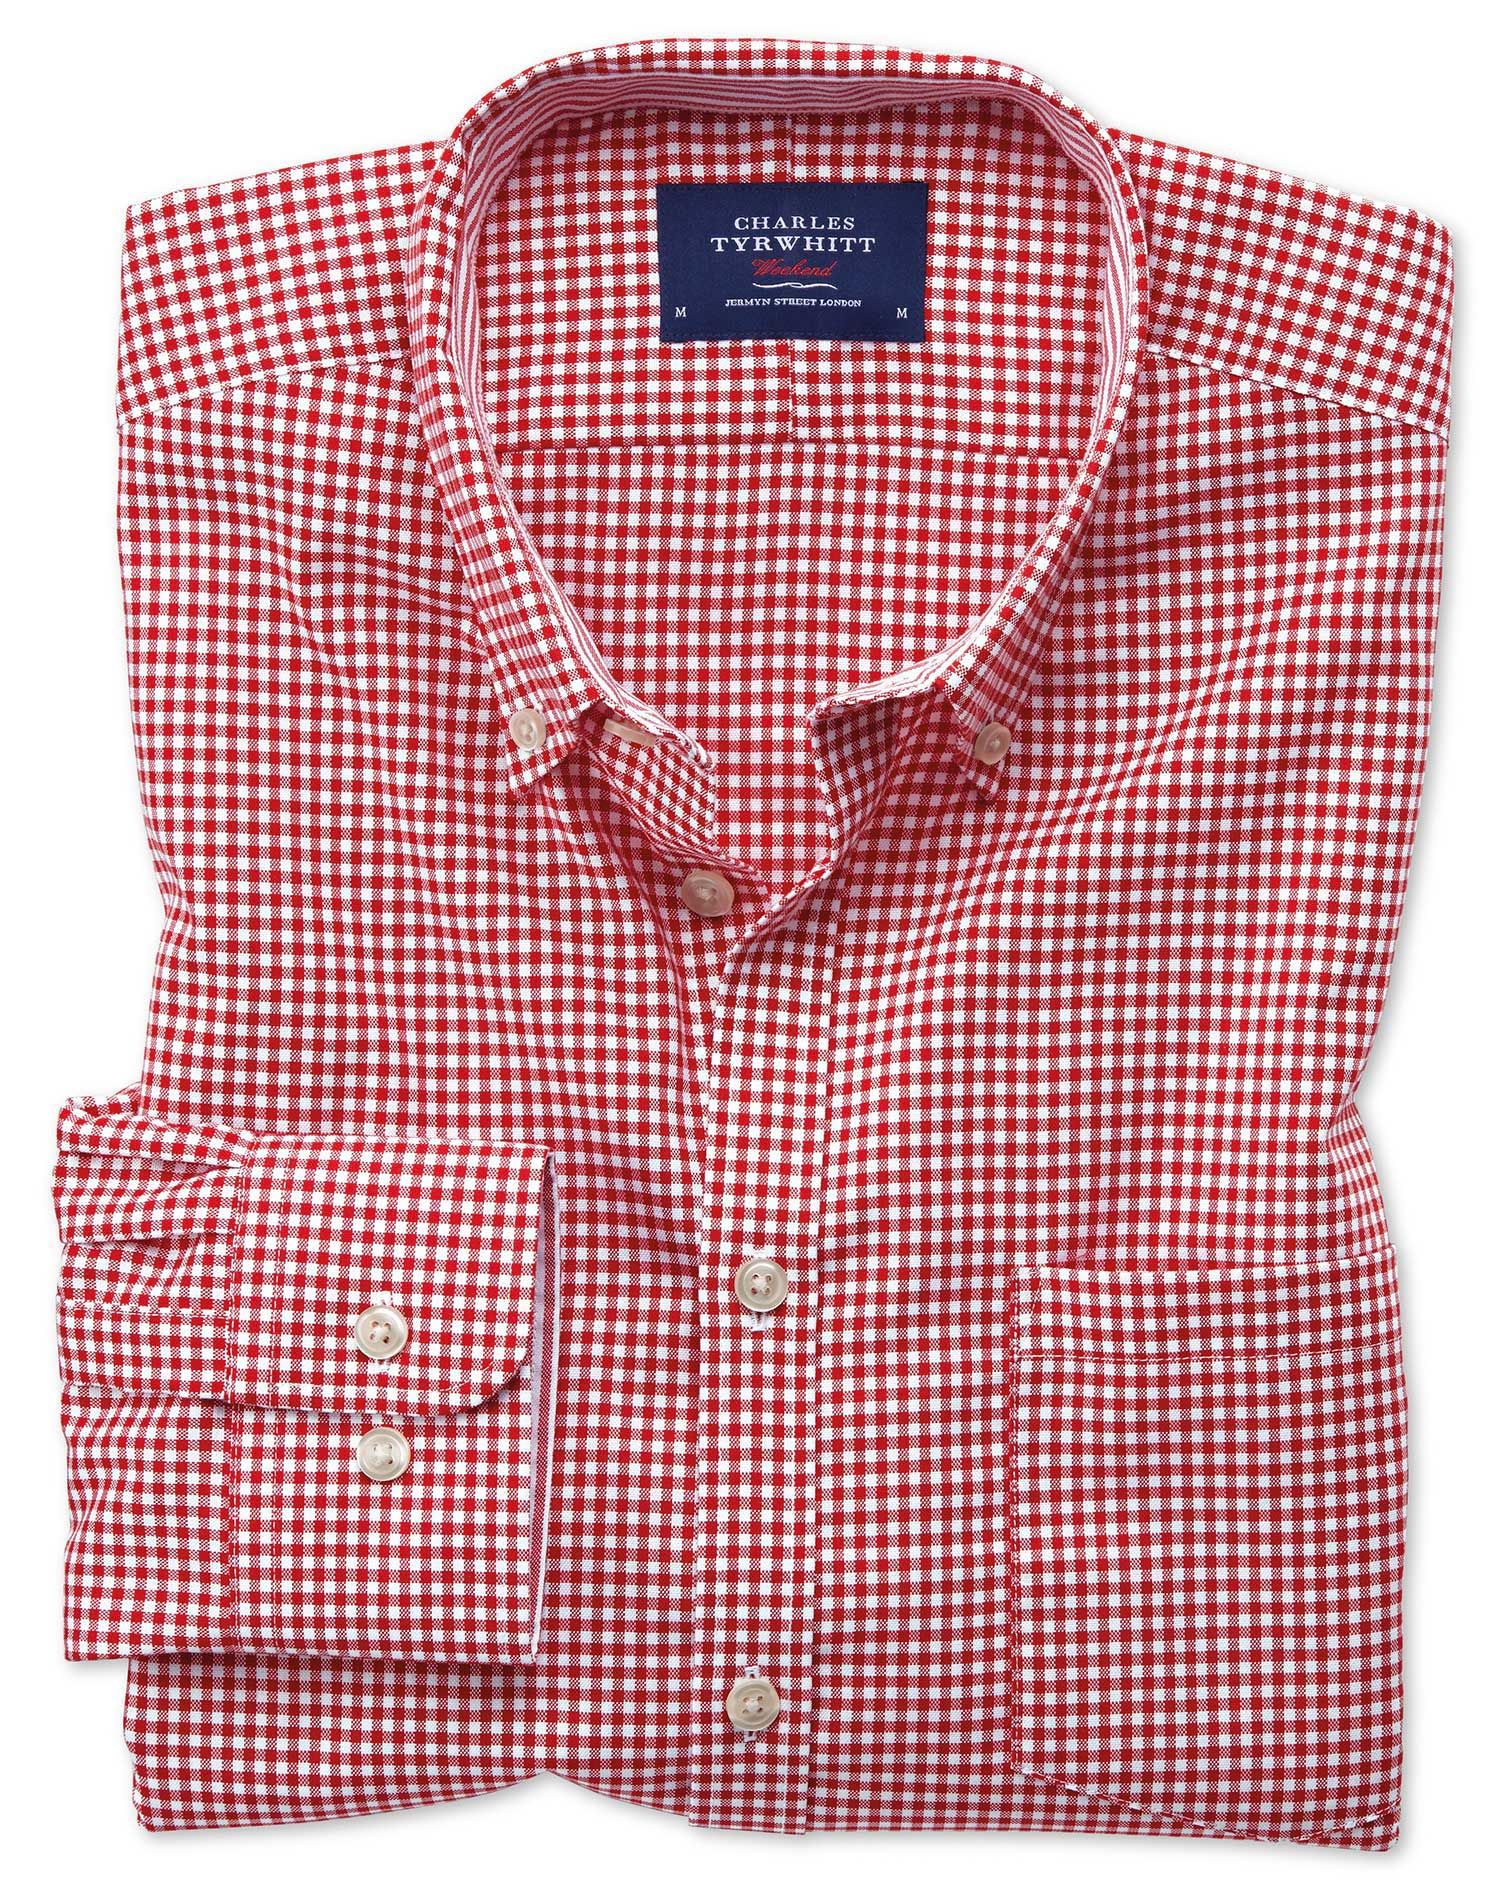 Classic Fit Button-Down Non-Iron Oxford Gingham Red Cotton Shirt Single Cuff Size Large by Charles T